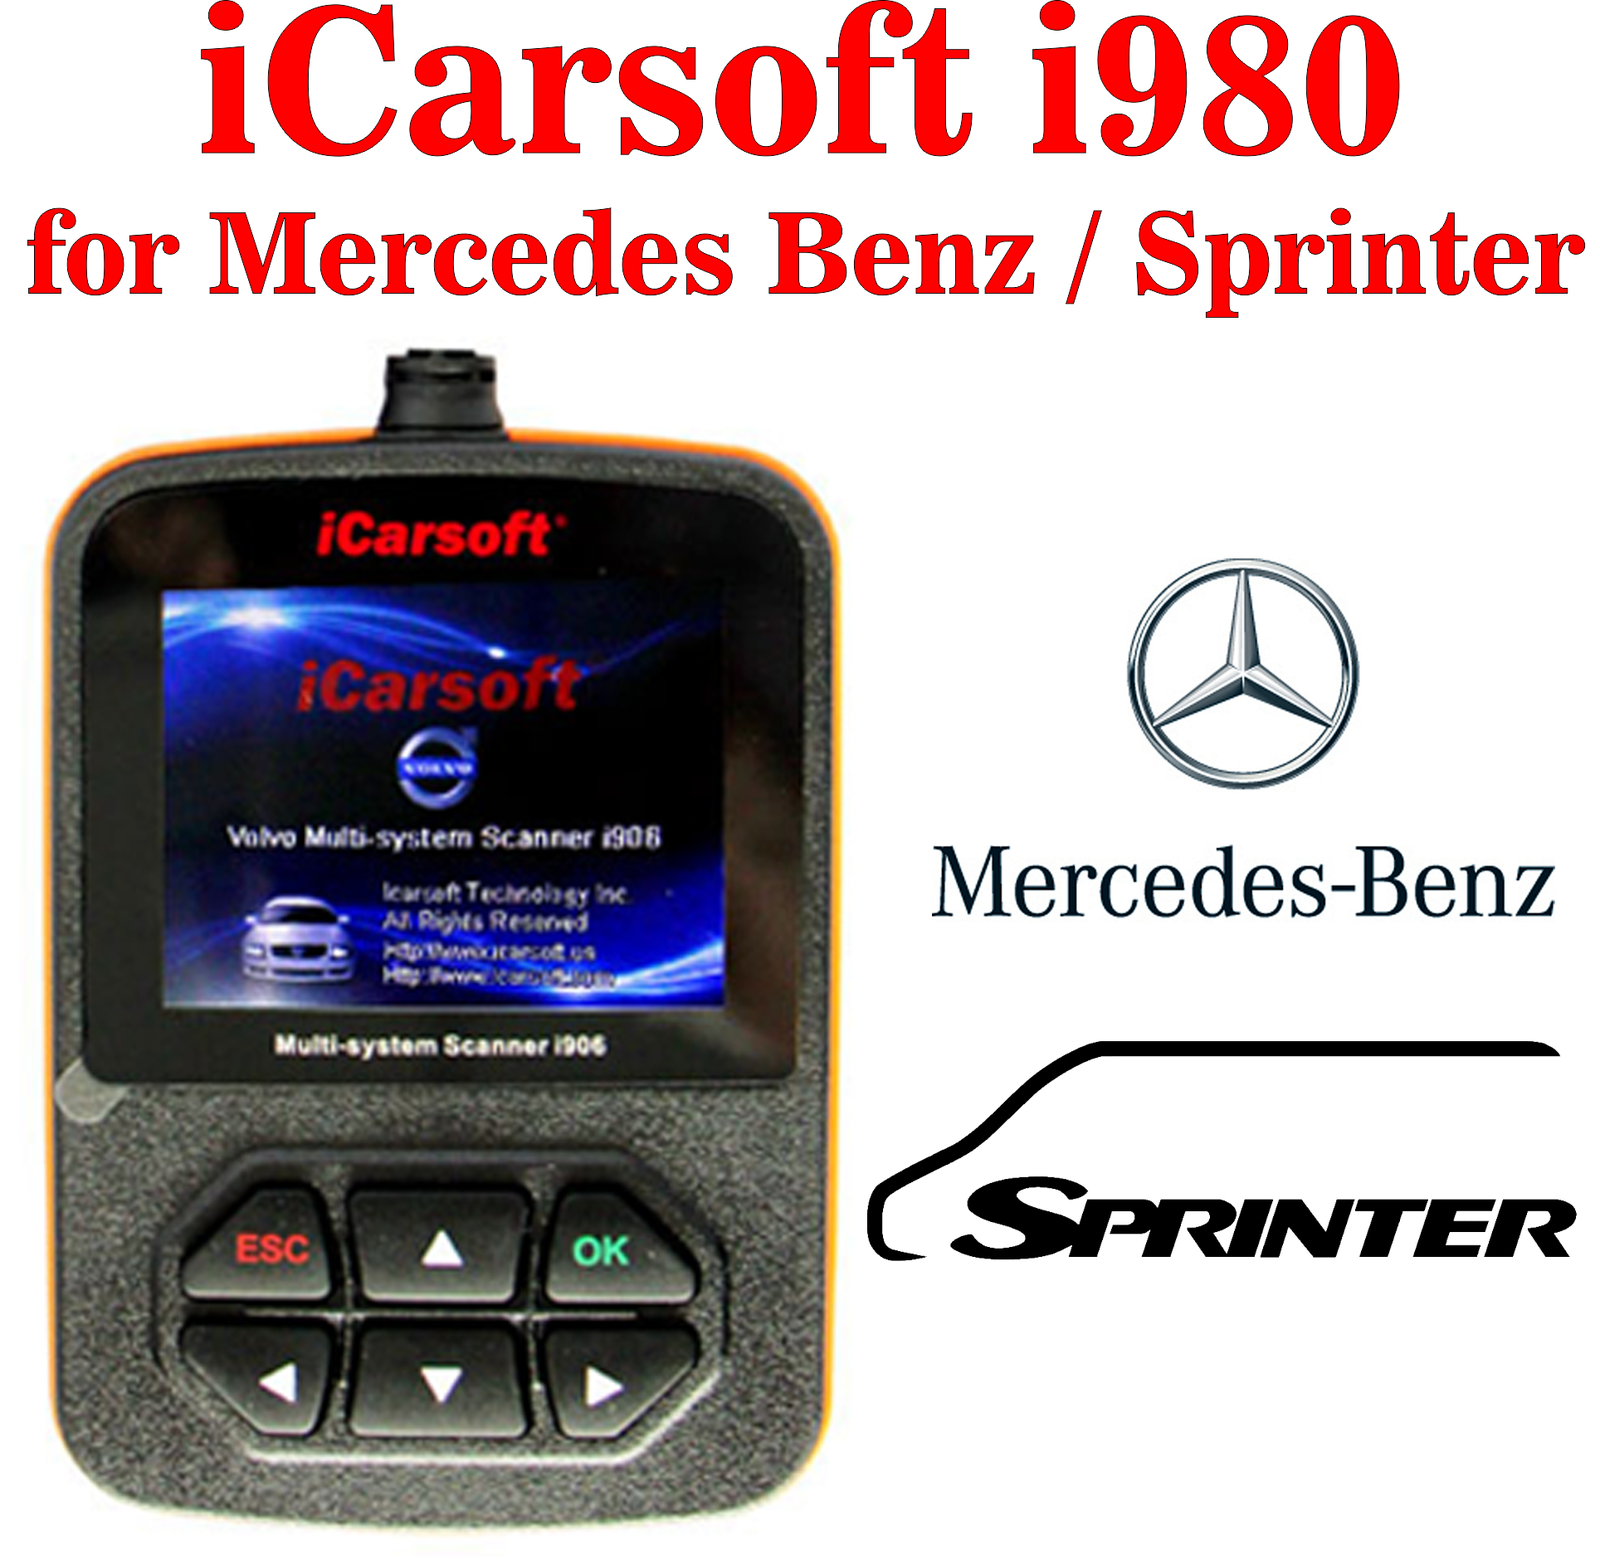 Mercedes benz obd2 multi system icarsoft i980 code fault for Promo code for mercedes benz accessories